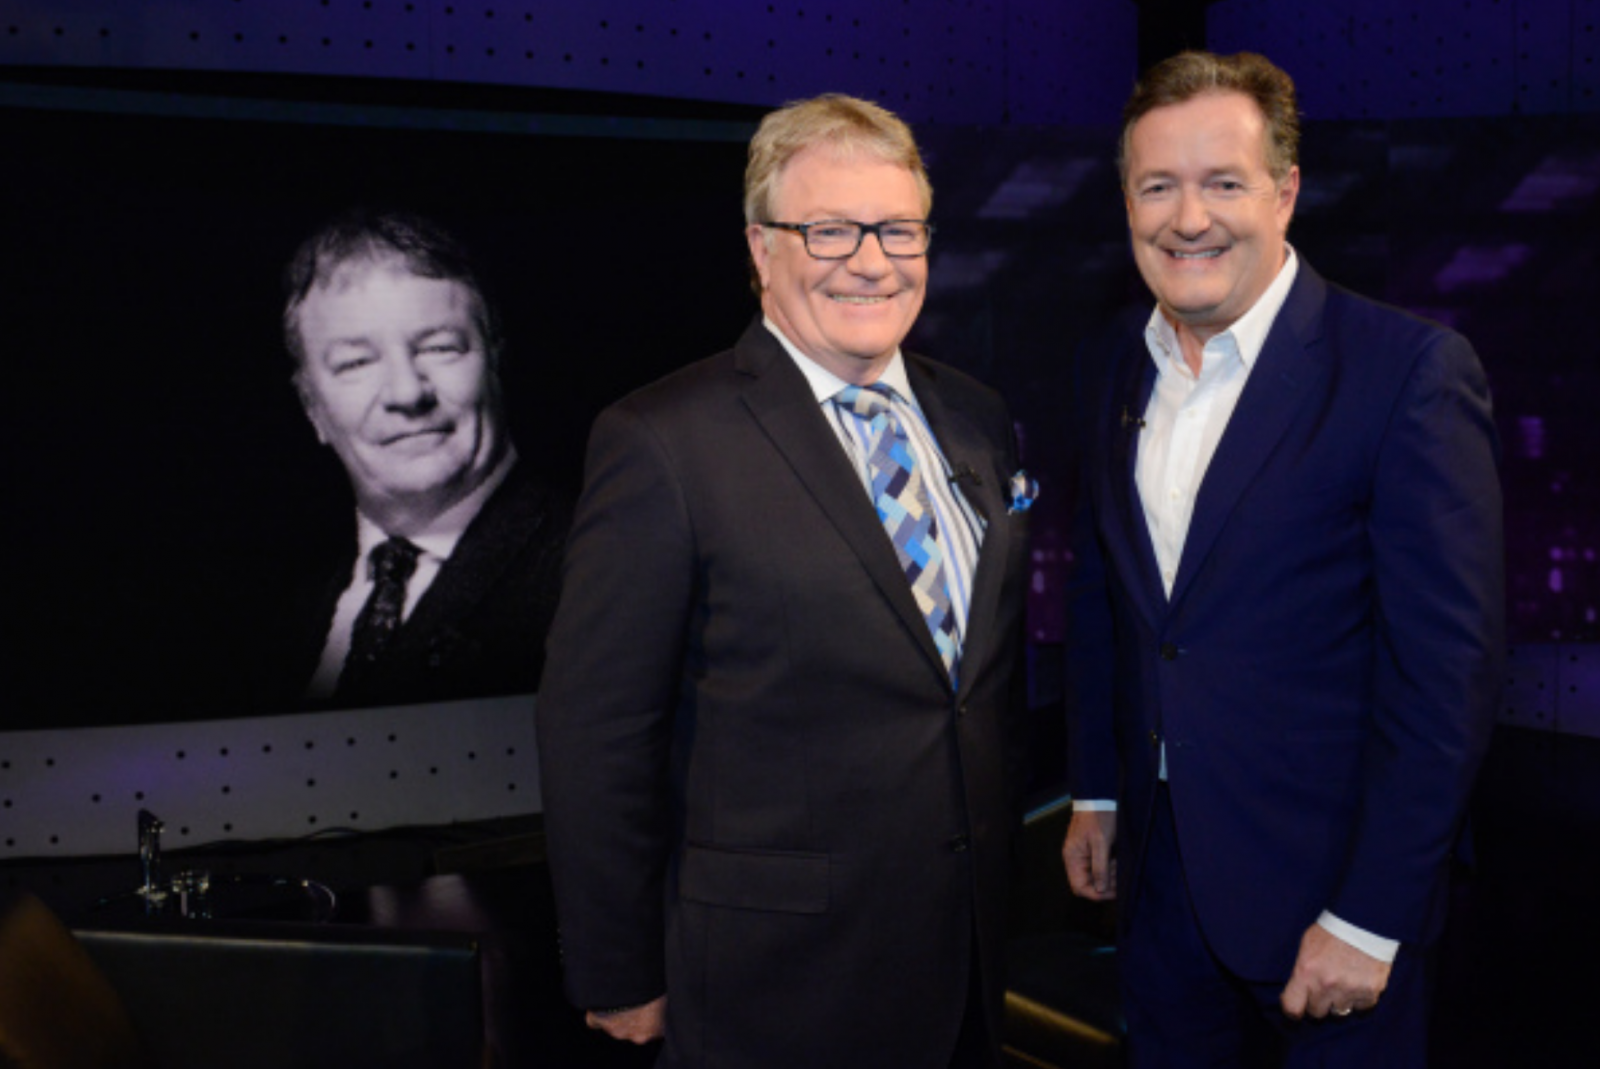 Right wing mysogonistic bigot interviews Jim Davidson